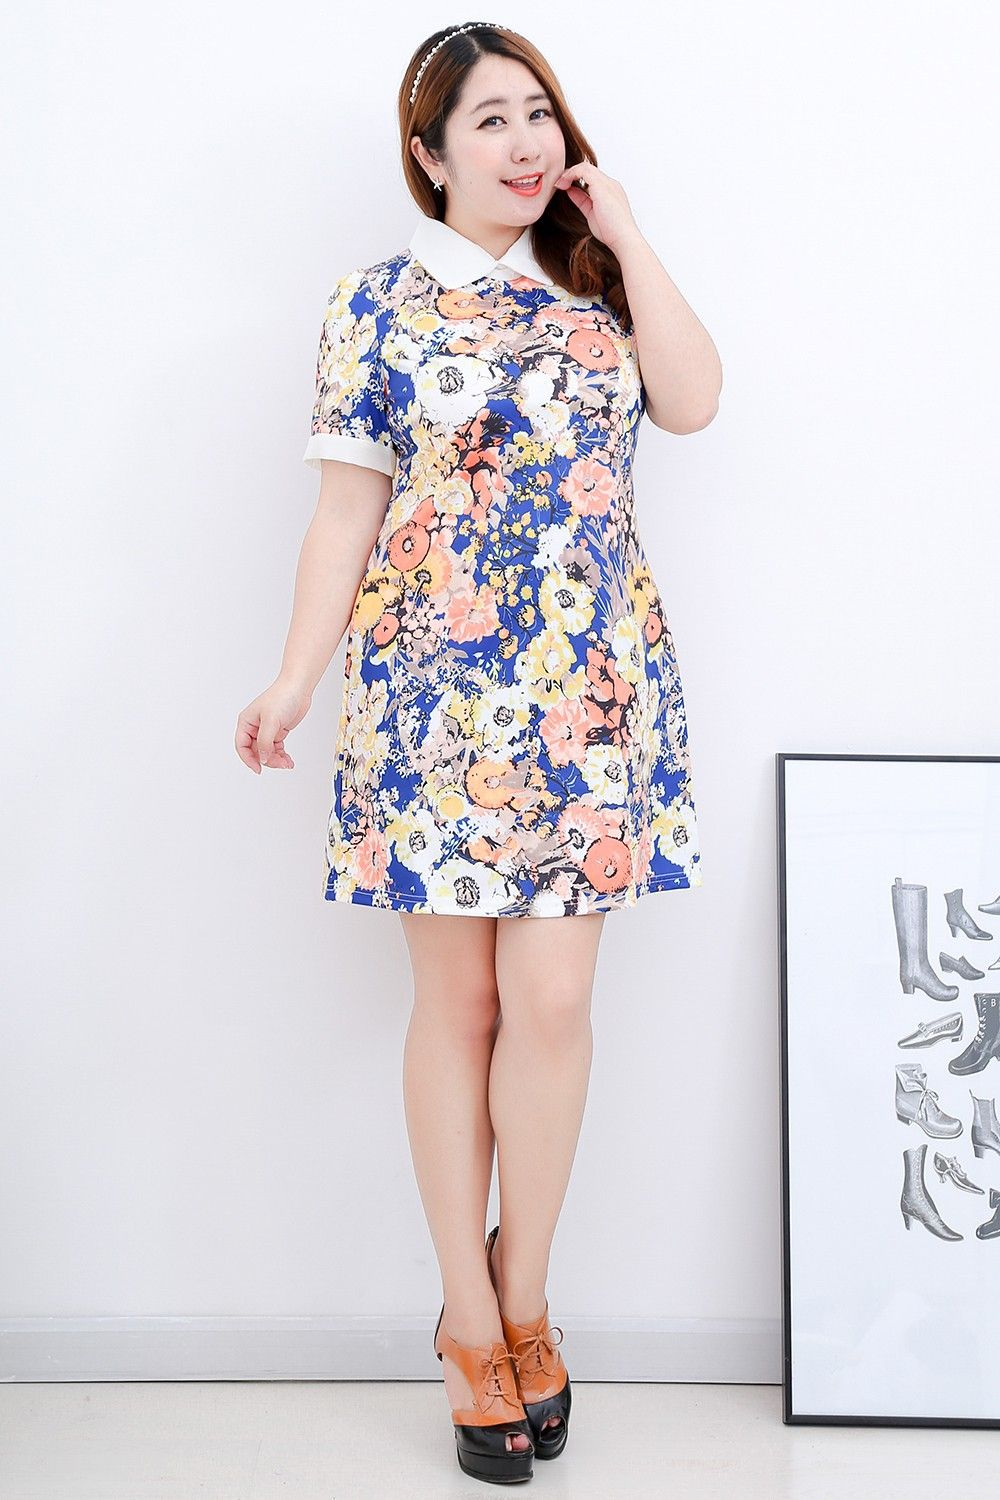 Floral collared shift dress, up to 6xl China size, US$30